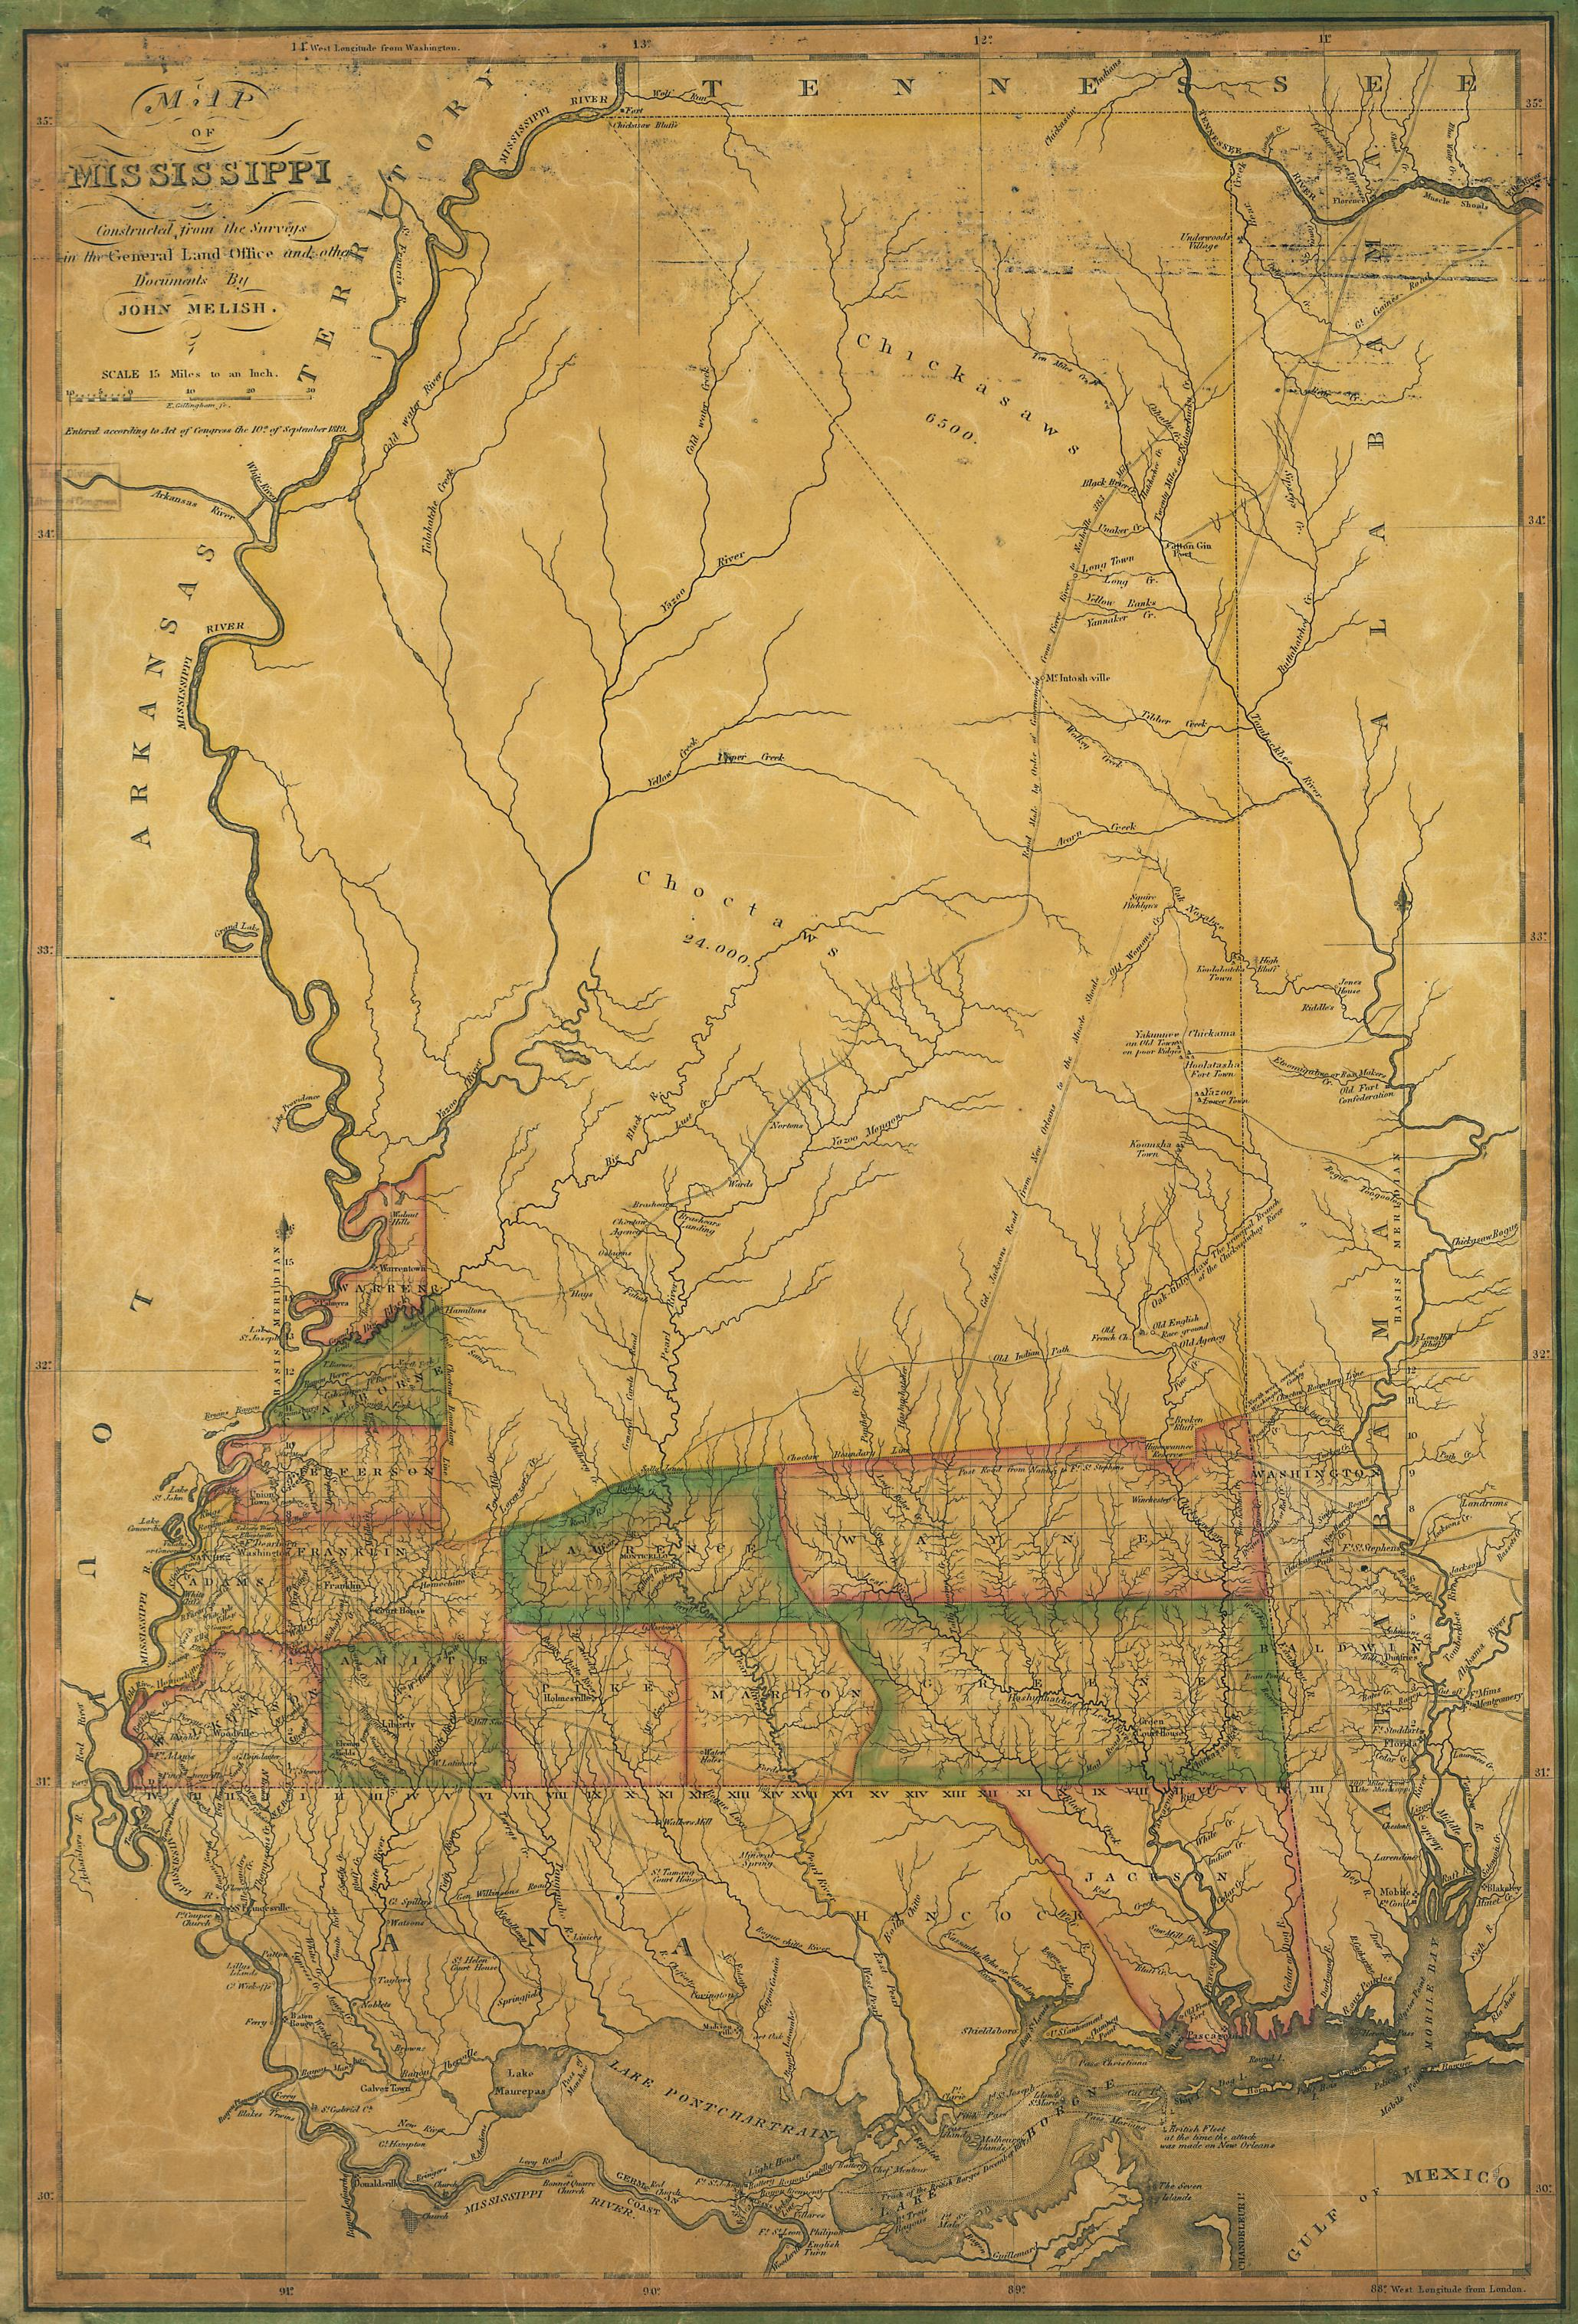 Thomas Nc Map Thomas Free Download Images World Maps Us Map In 1820